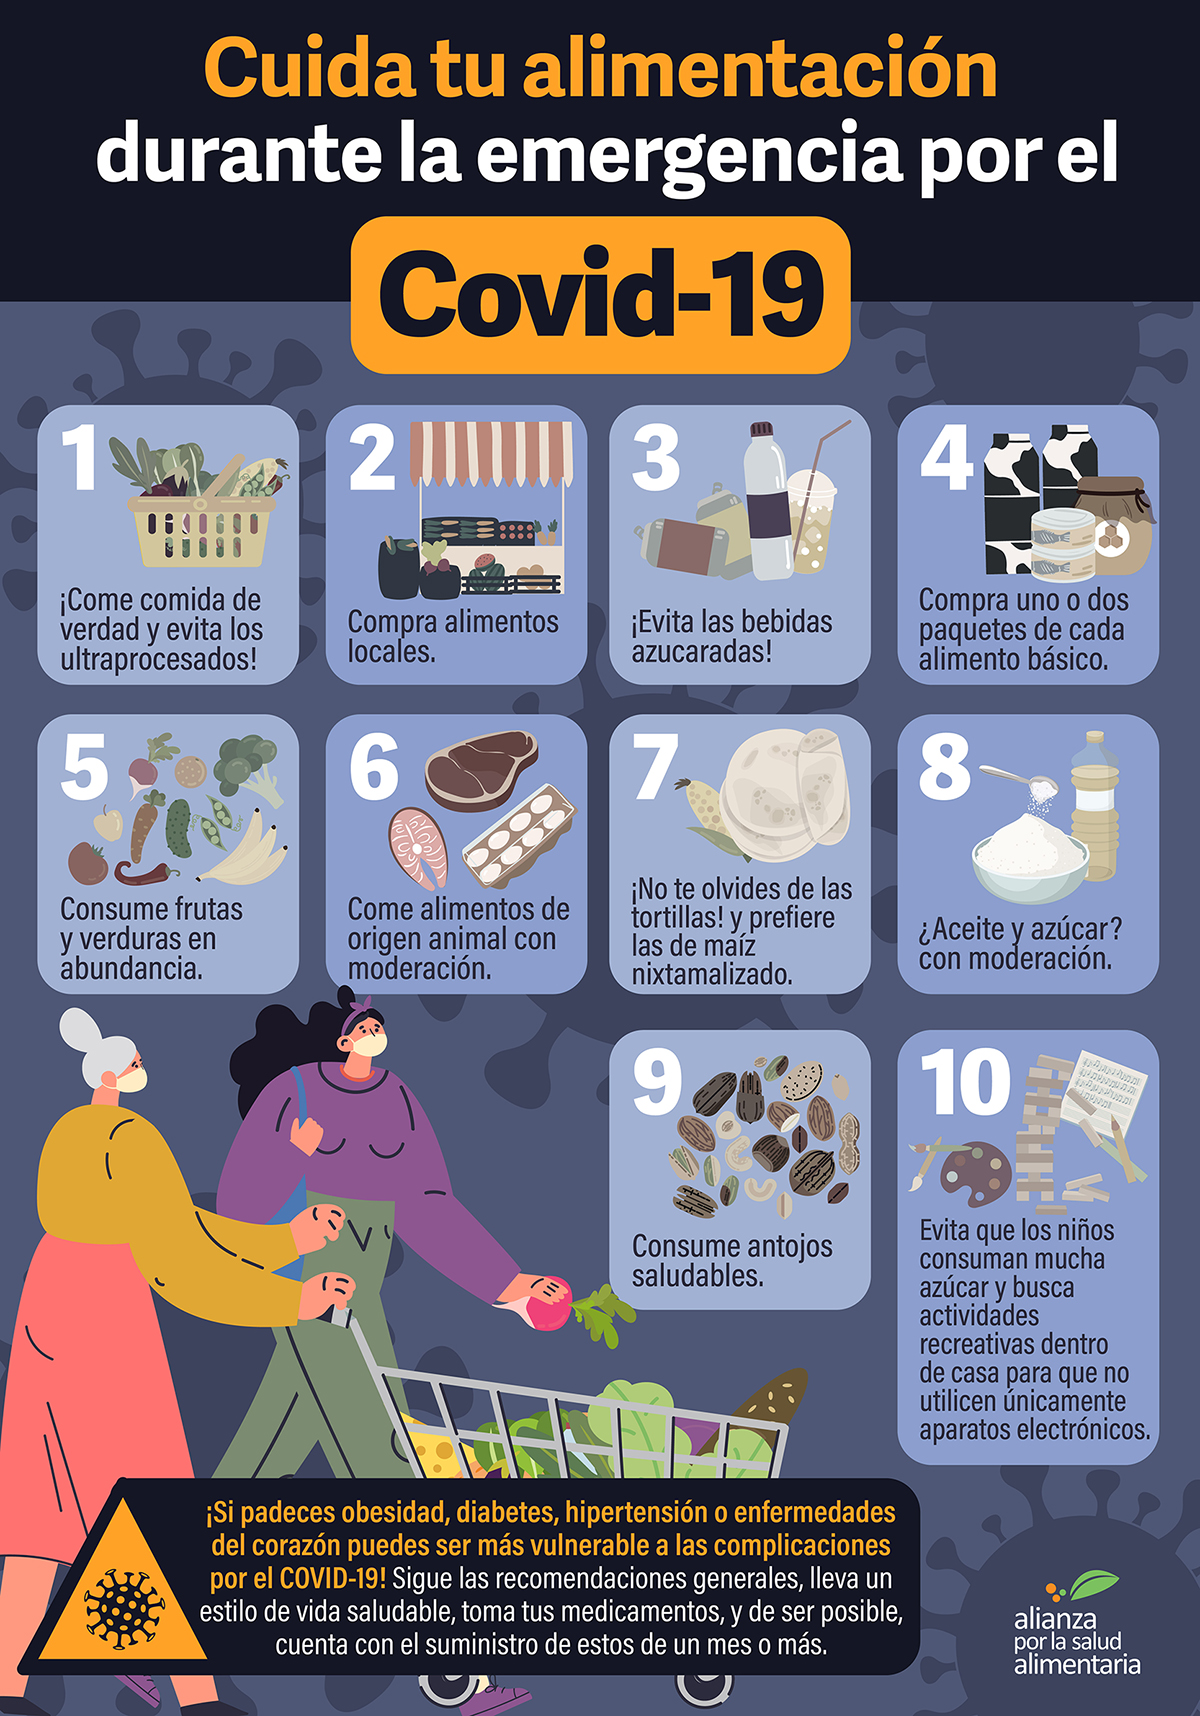 Nutrition recommendation in Mexico during Covid-19 pandemy.